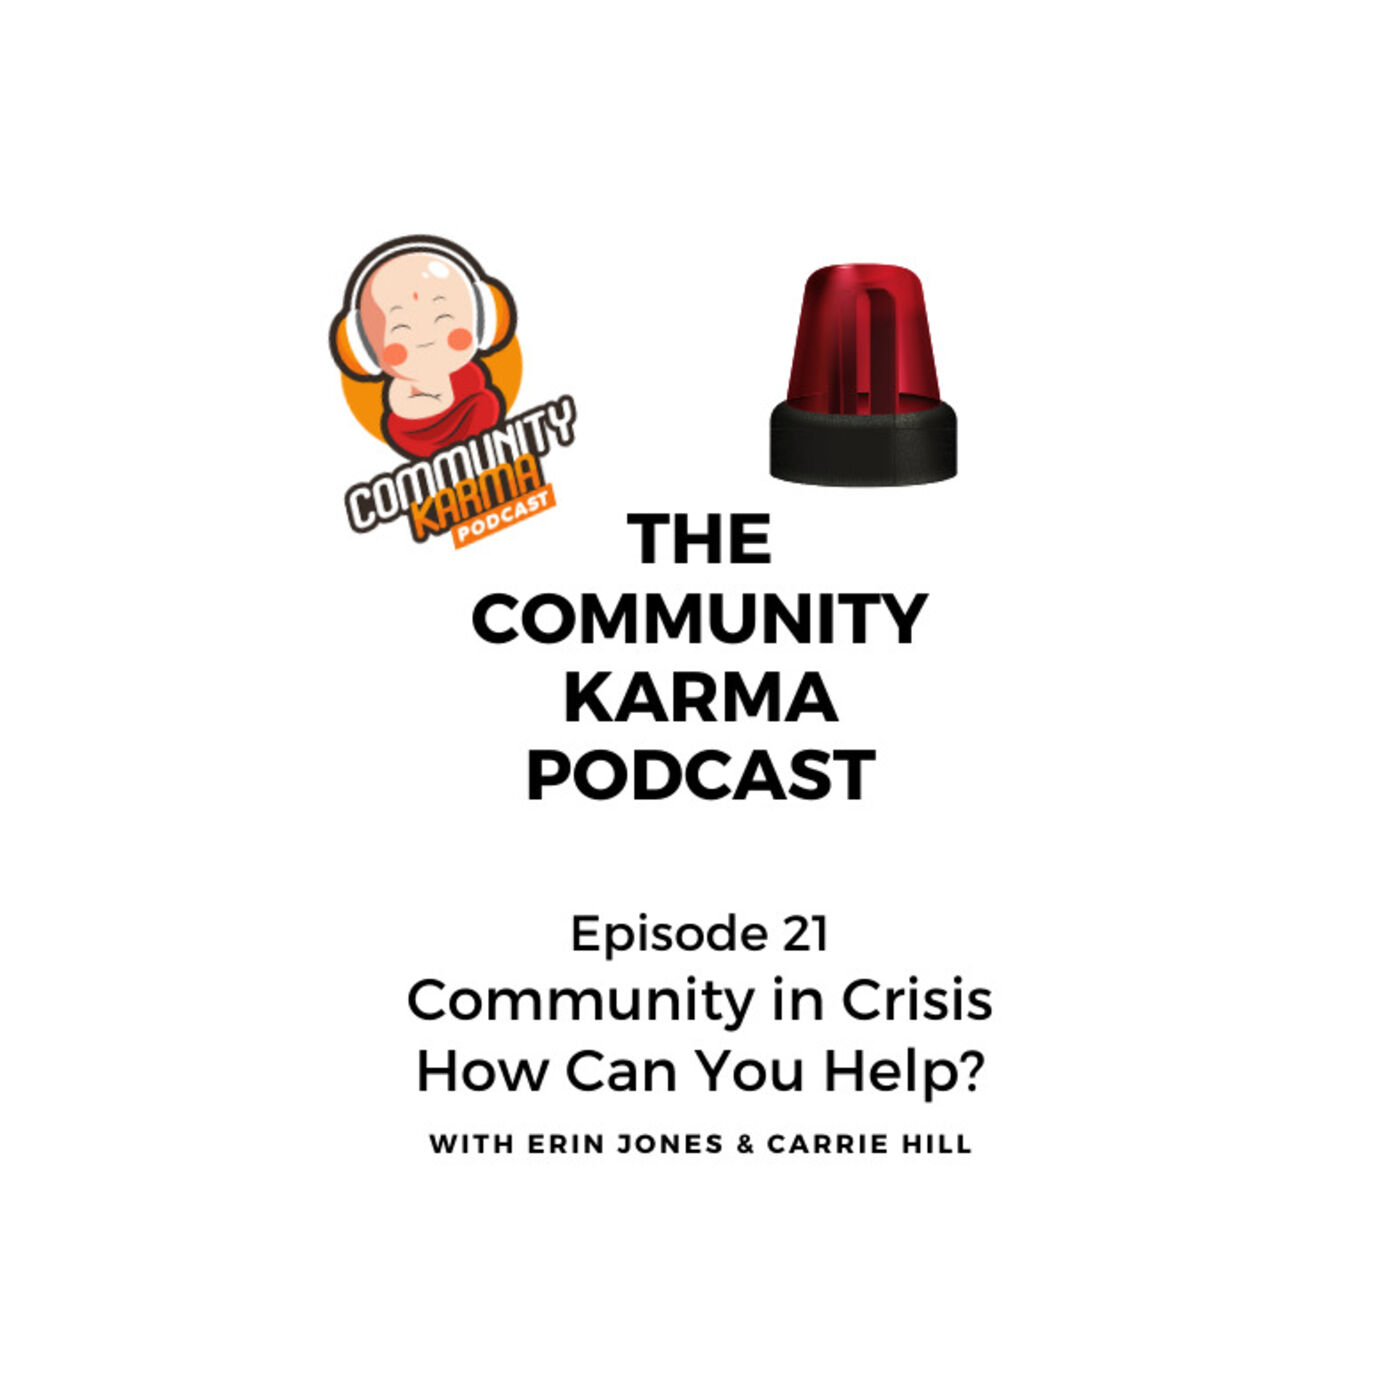 Episode 21 Community In Crisis - How Can You Help?